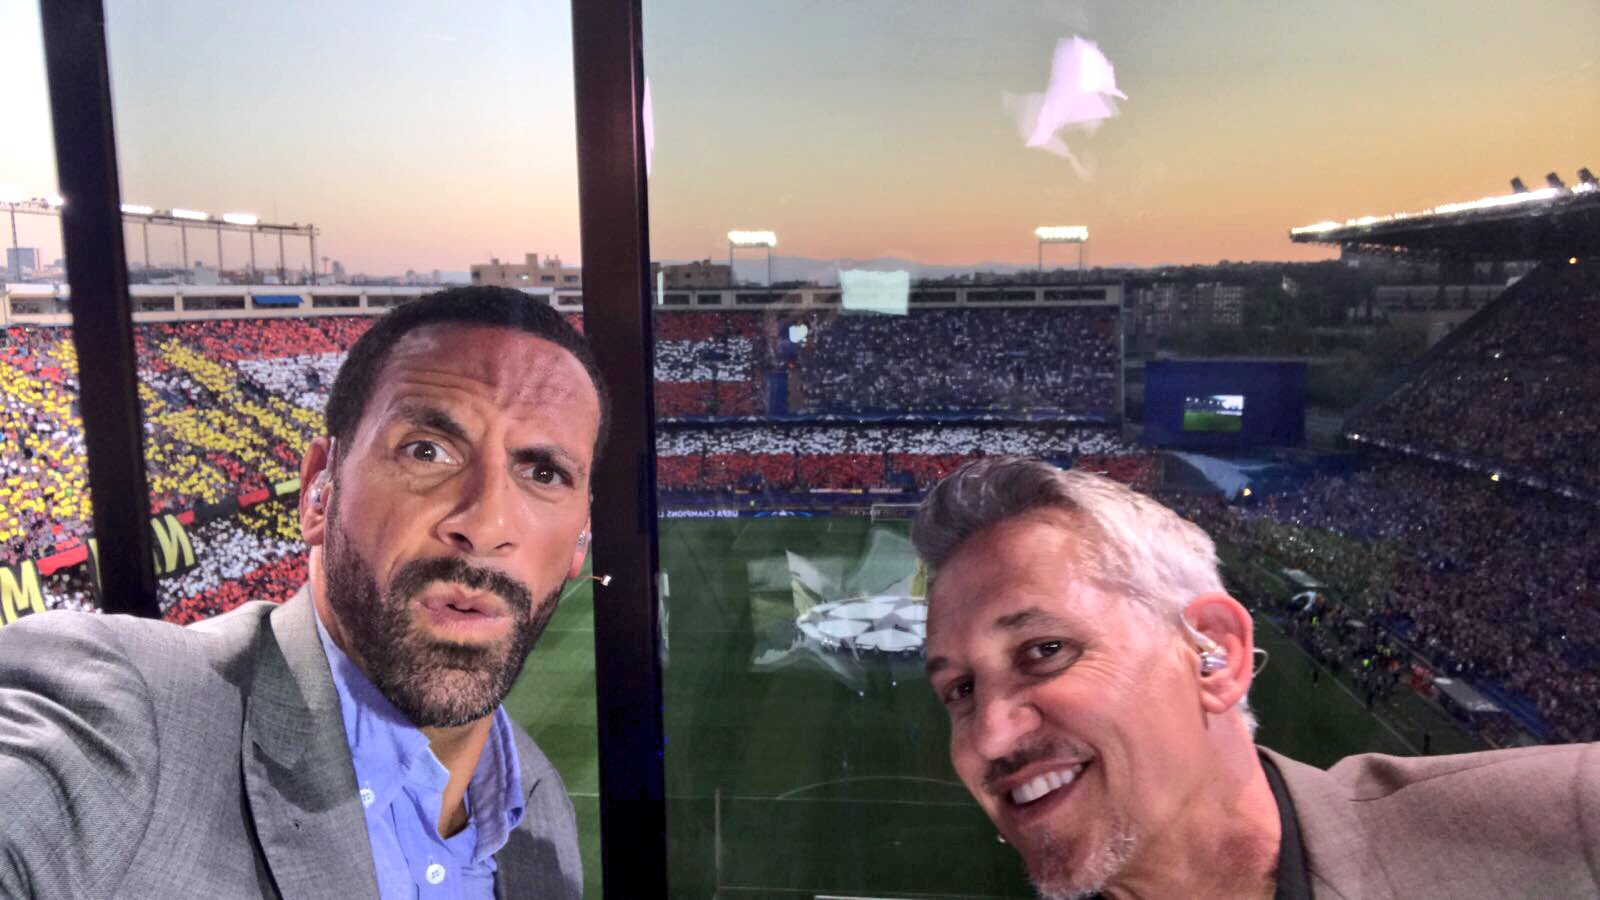 All set & ready to go with @GaryLineker ... that #UCL music gives me goosebumps every time! #AtletiLeicester https://t.co/BZ1RJ0Mtnm